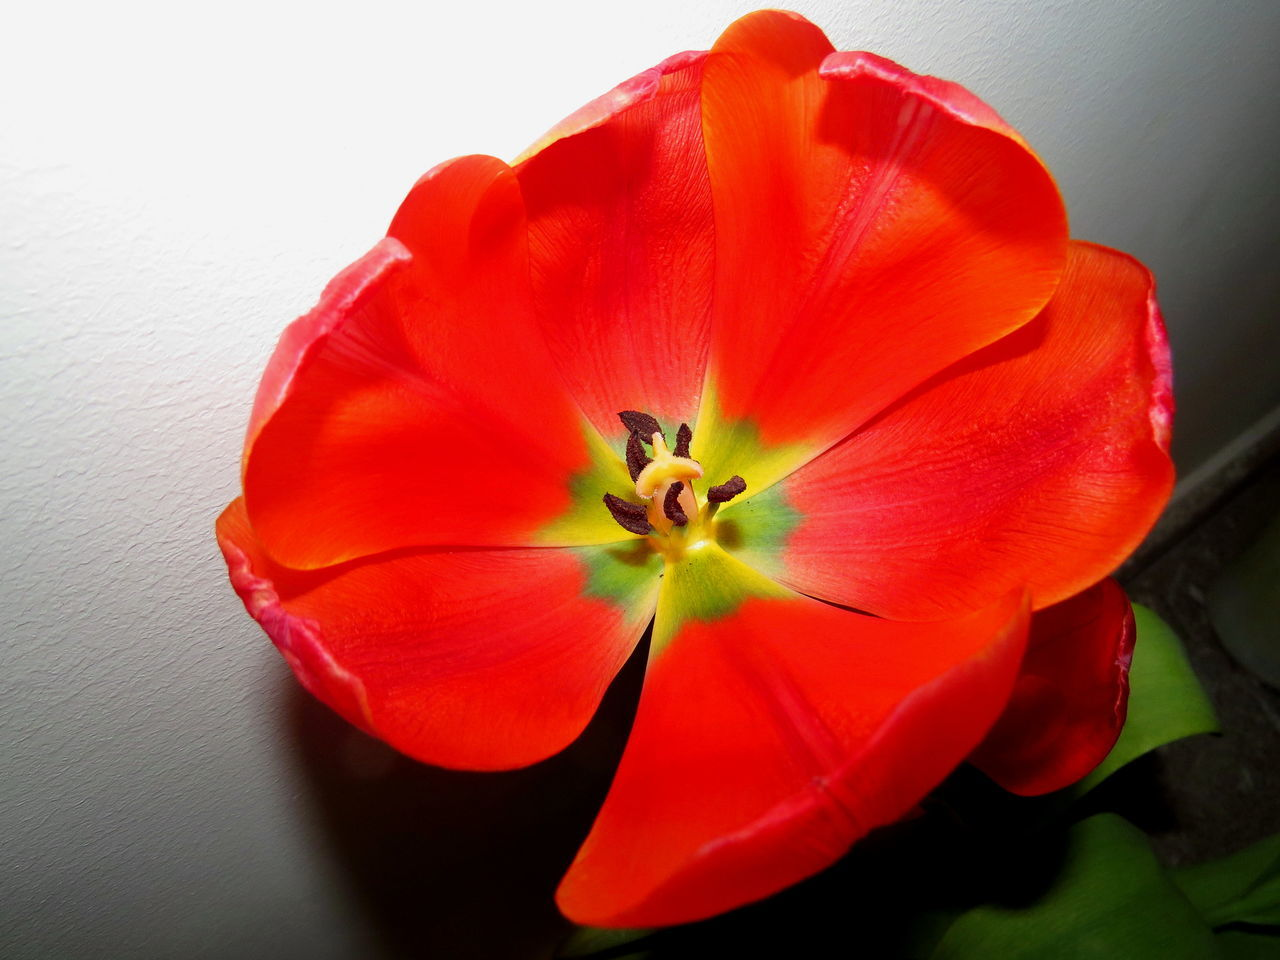 flower, petal, red, flower head, beauty in nature, plant, close-up, nature, fragility, freshness, no people, growth, day, indoors